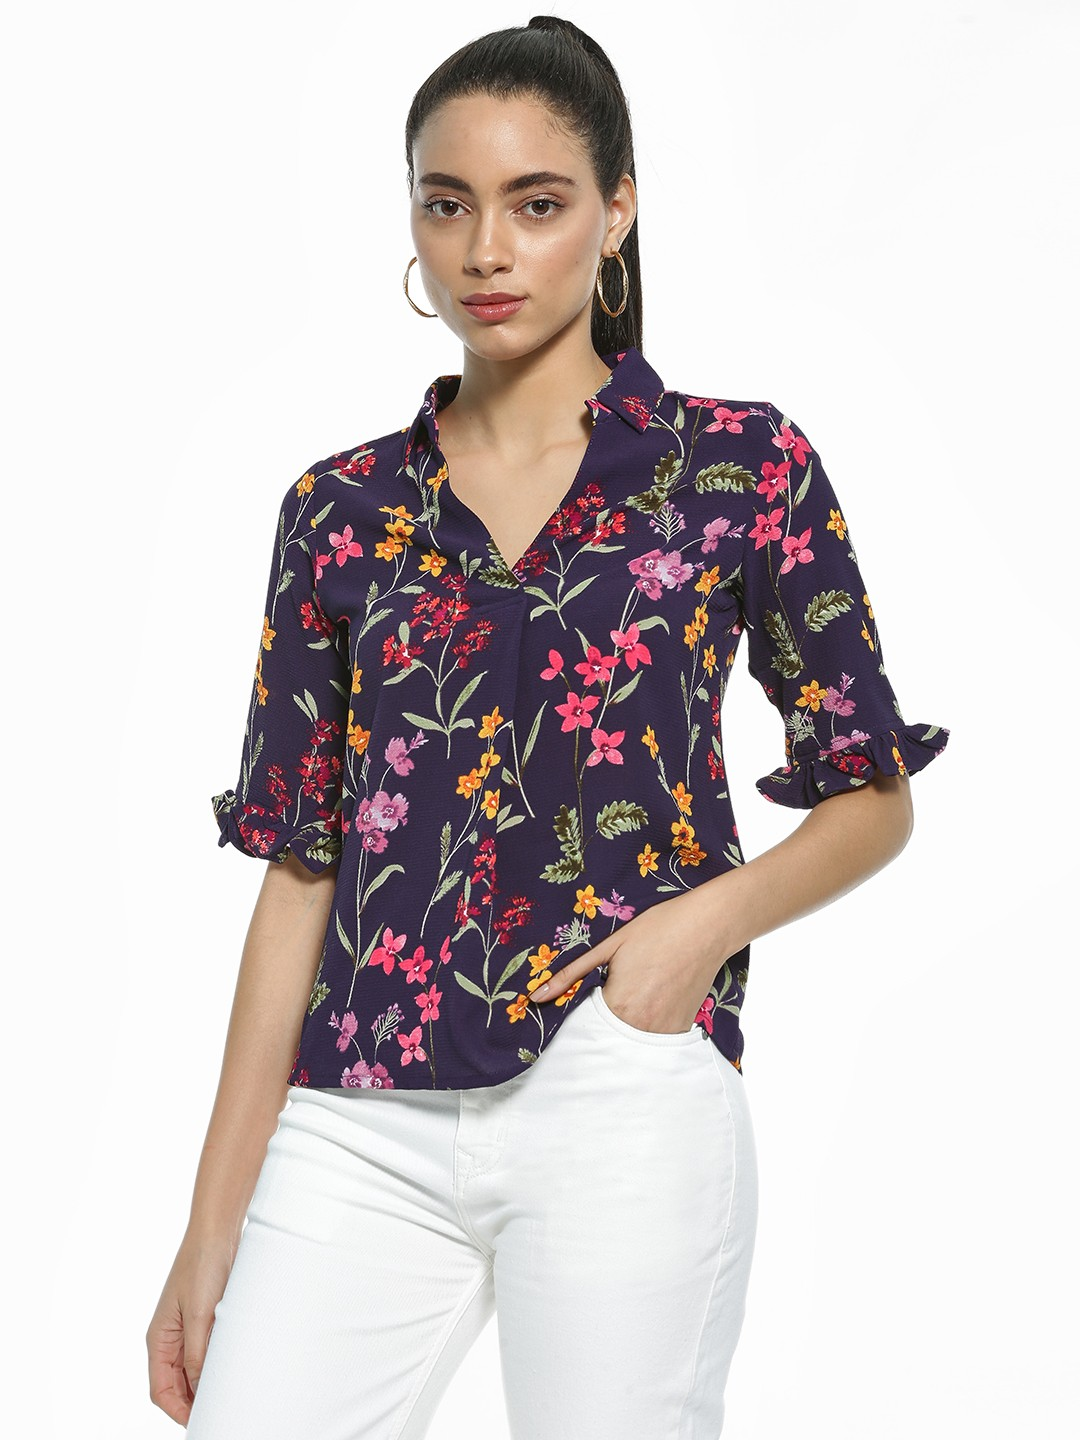 AND Navy Floral Print Collared Blouse 1